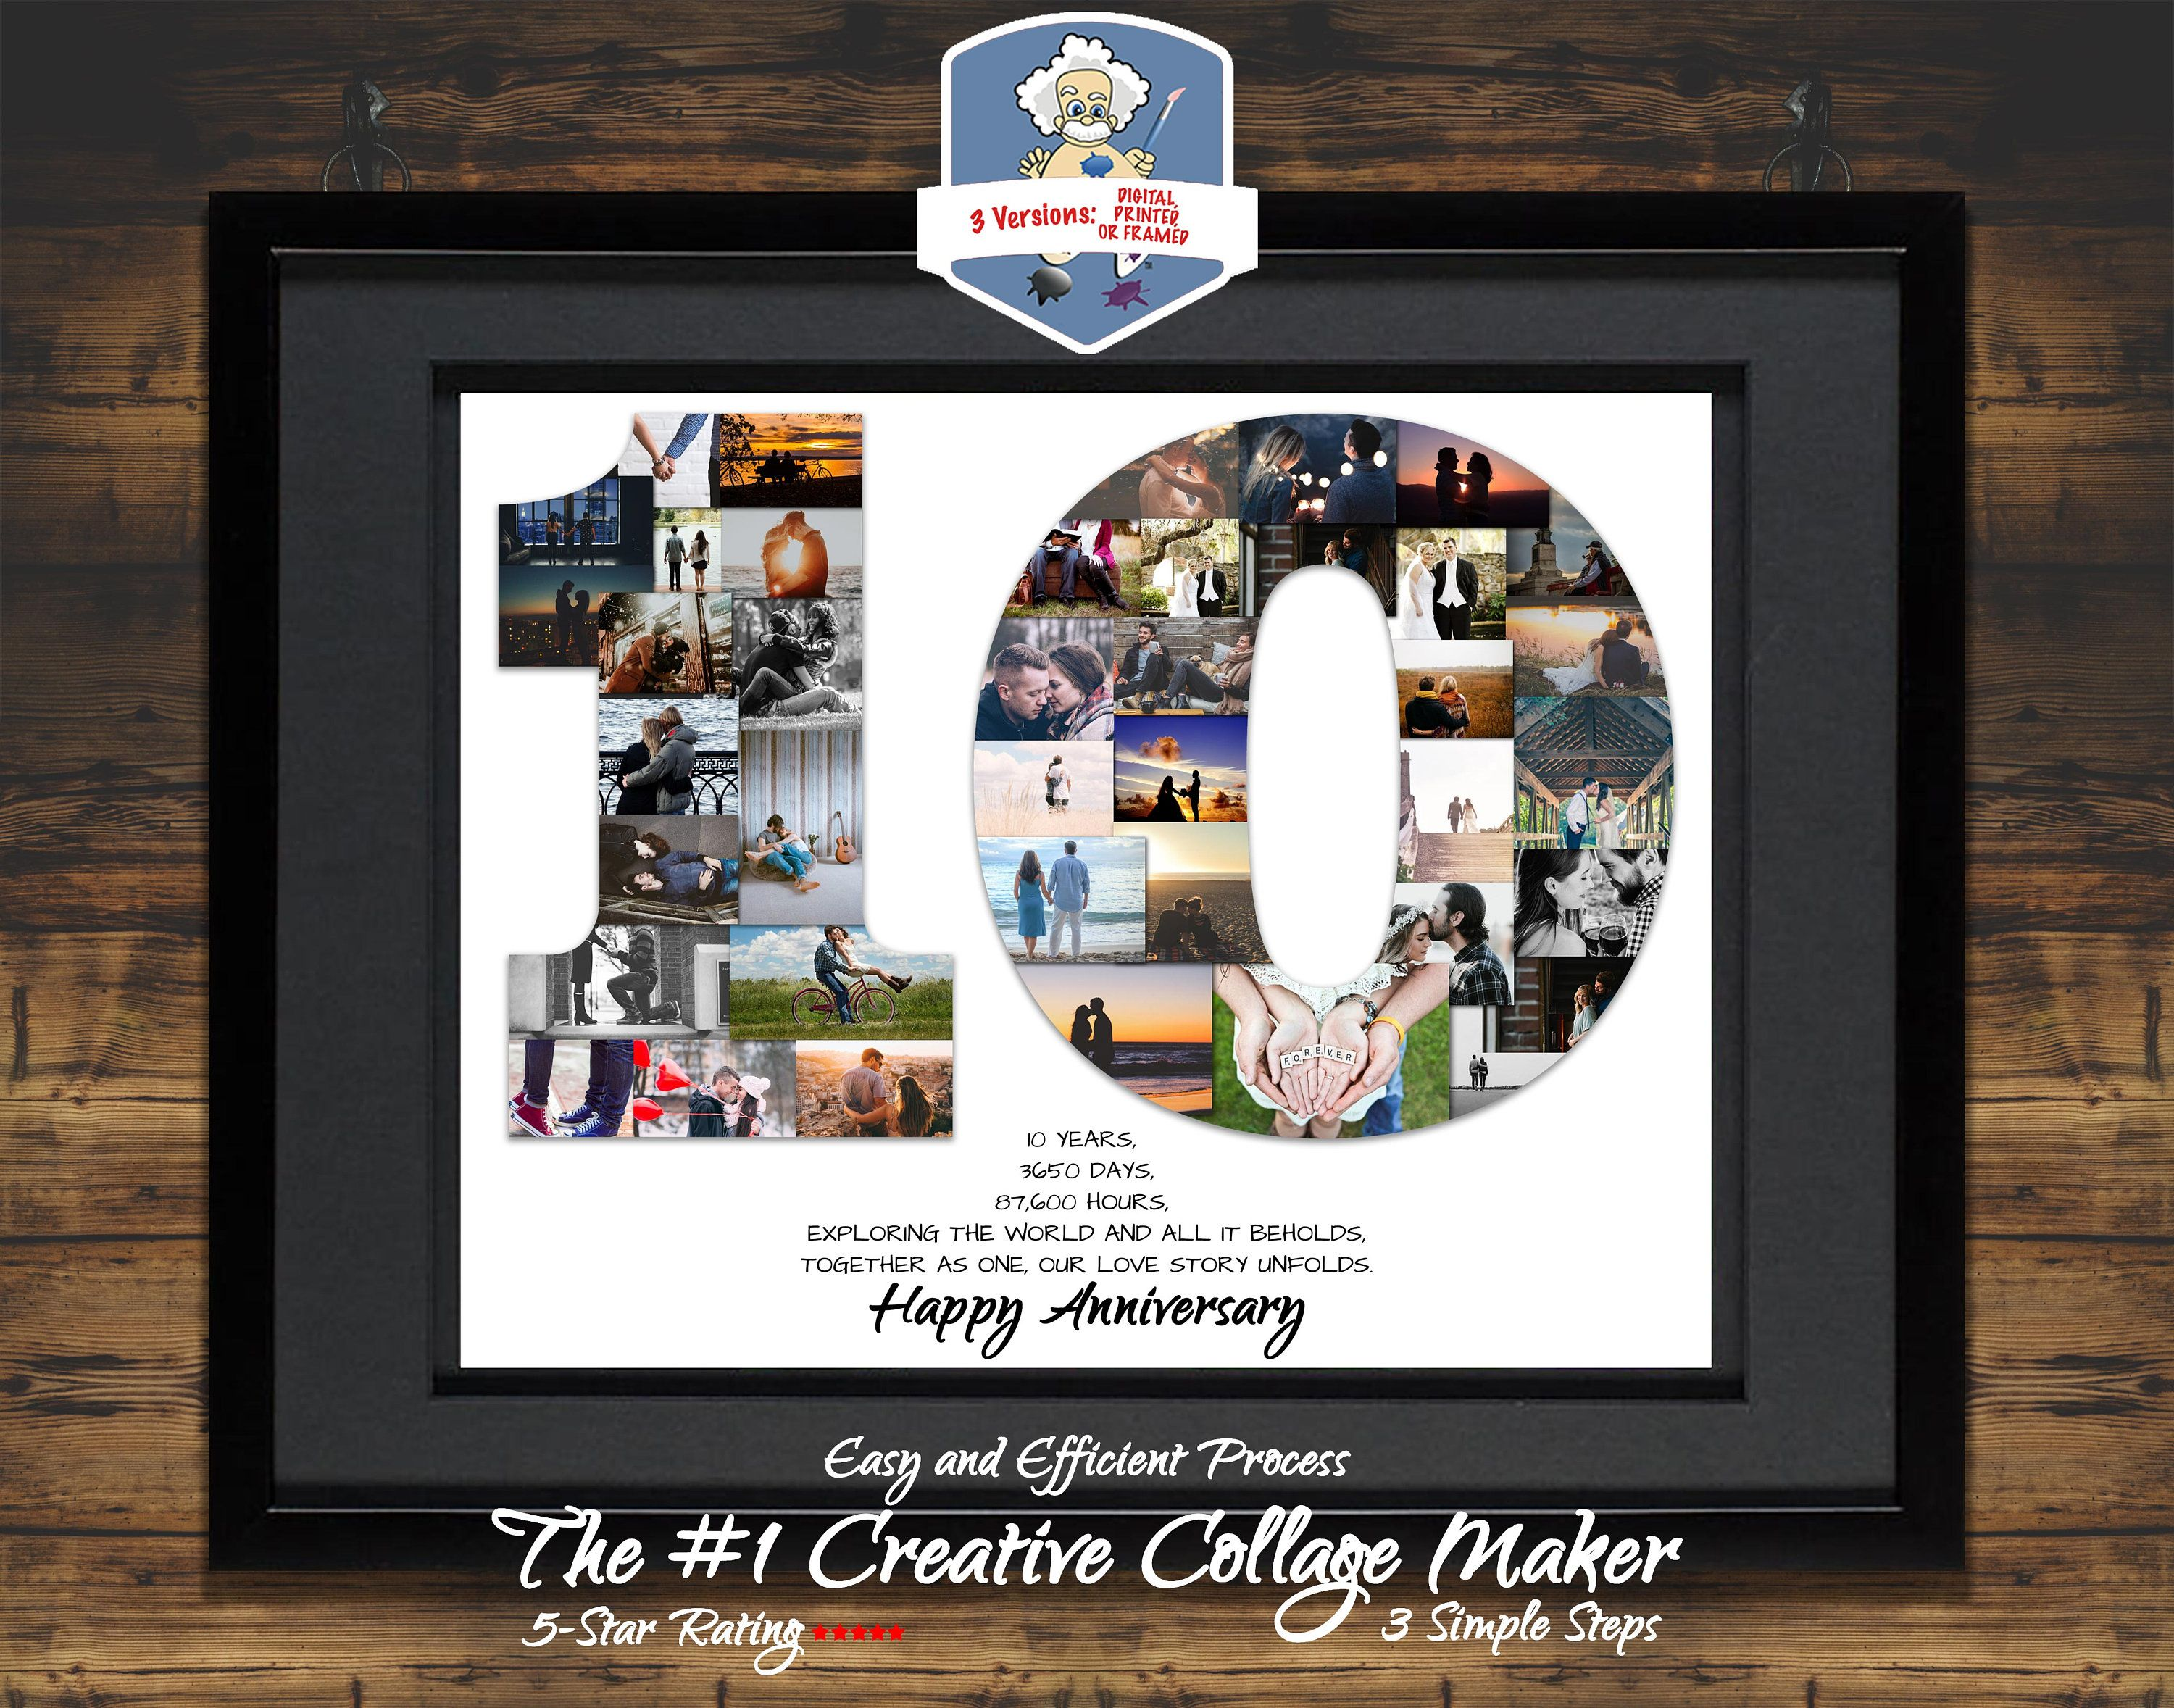 10th Anniversary Photo Collage 10th Anniversary Collage 10th Anniversary Gift 10 Year Annivers Birthday Photo Collage Birthday Collage Photo Collage Gift